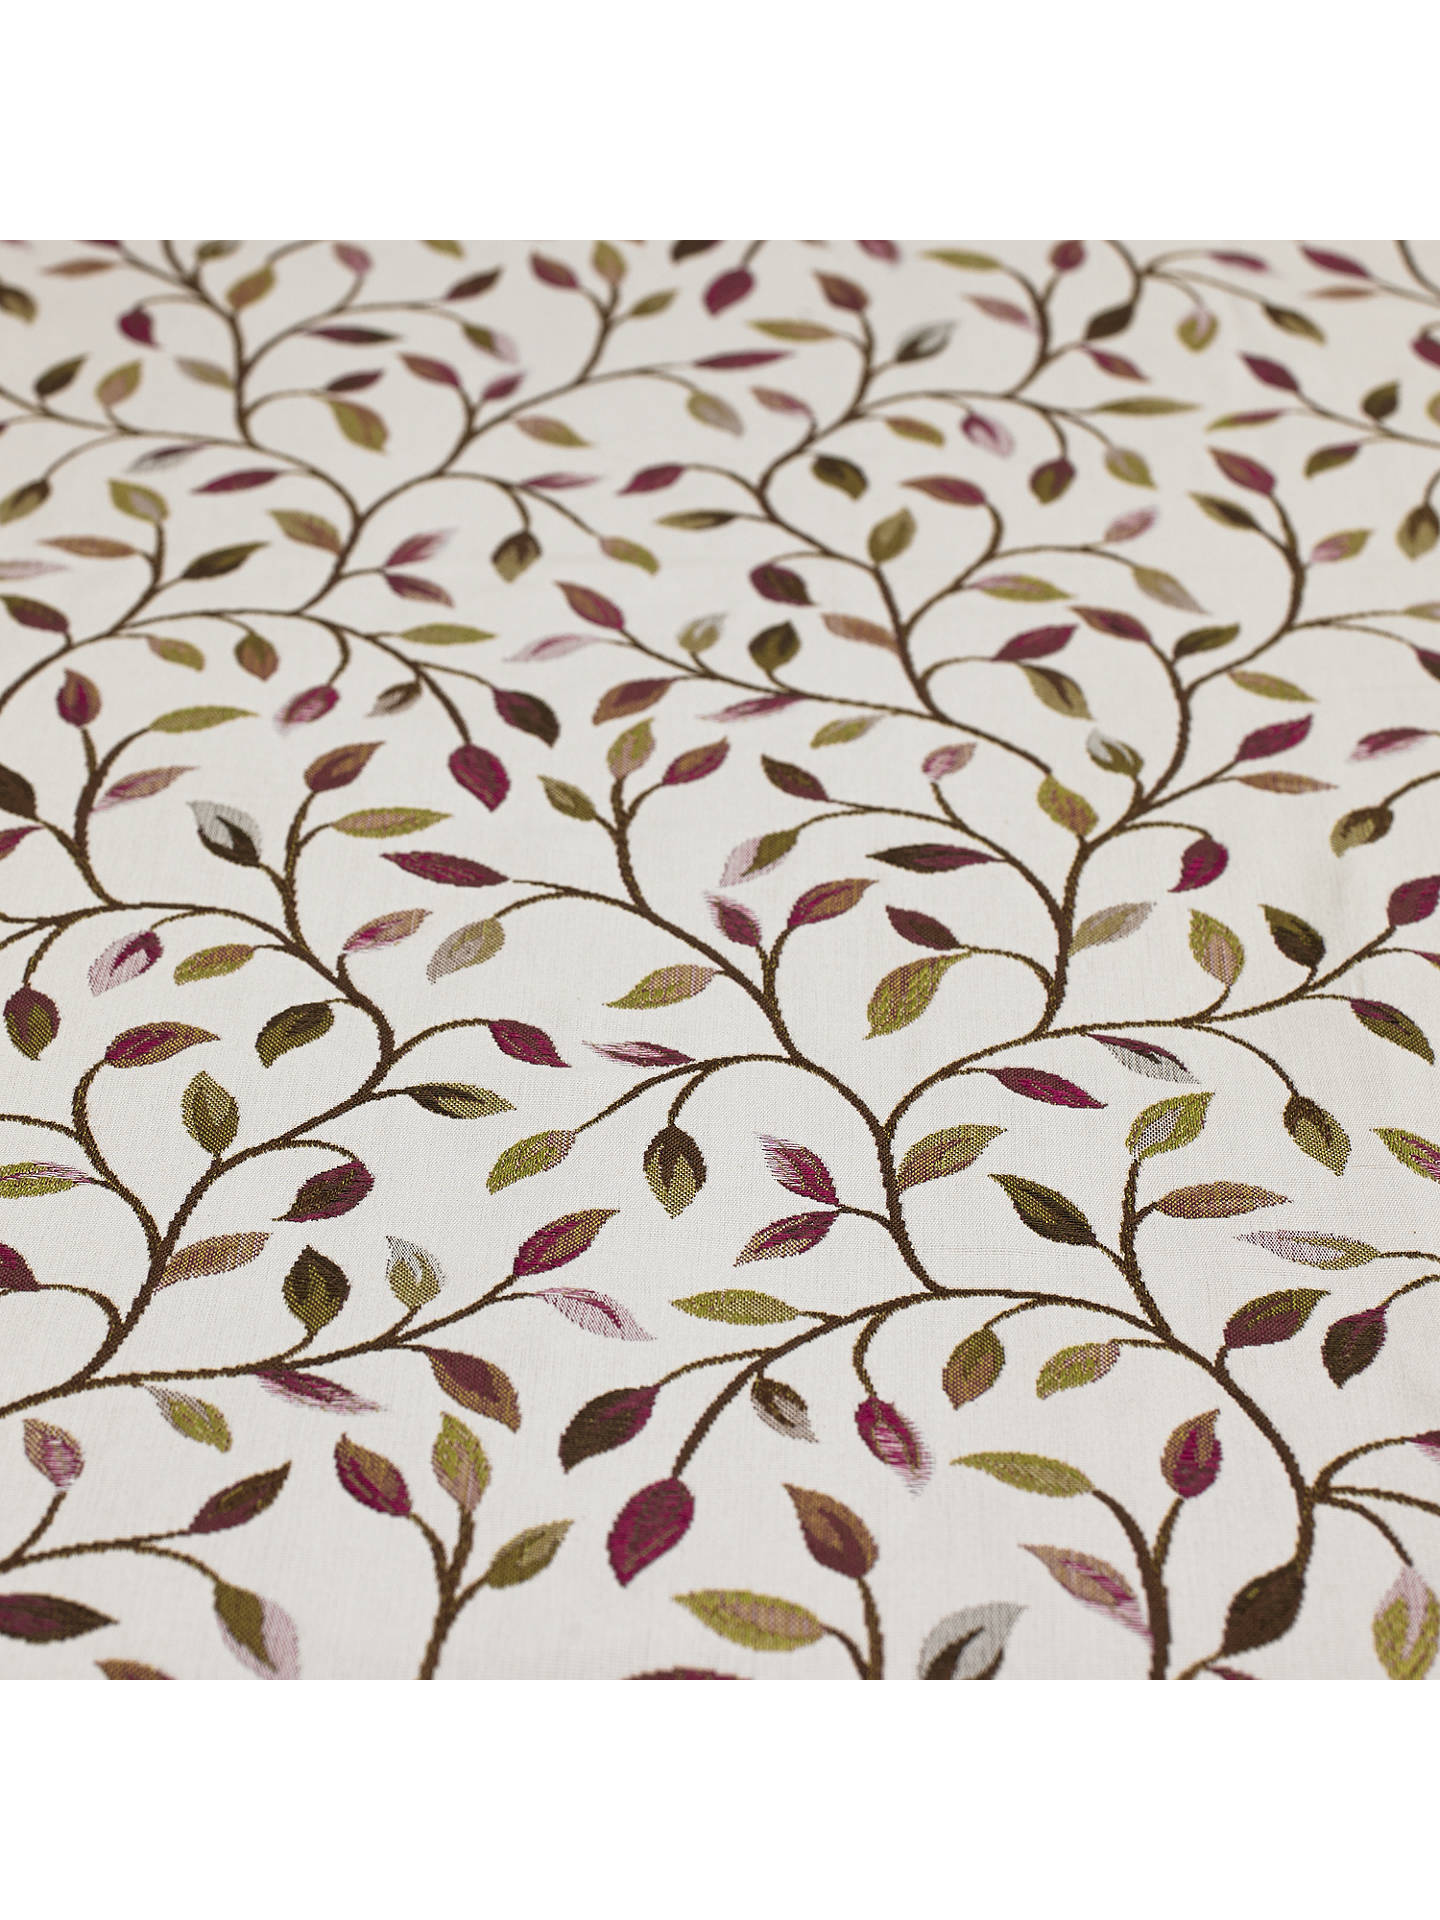 Buy Voyage Cervino Furnishing Fabric, Damson Online at johnlewis.com